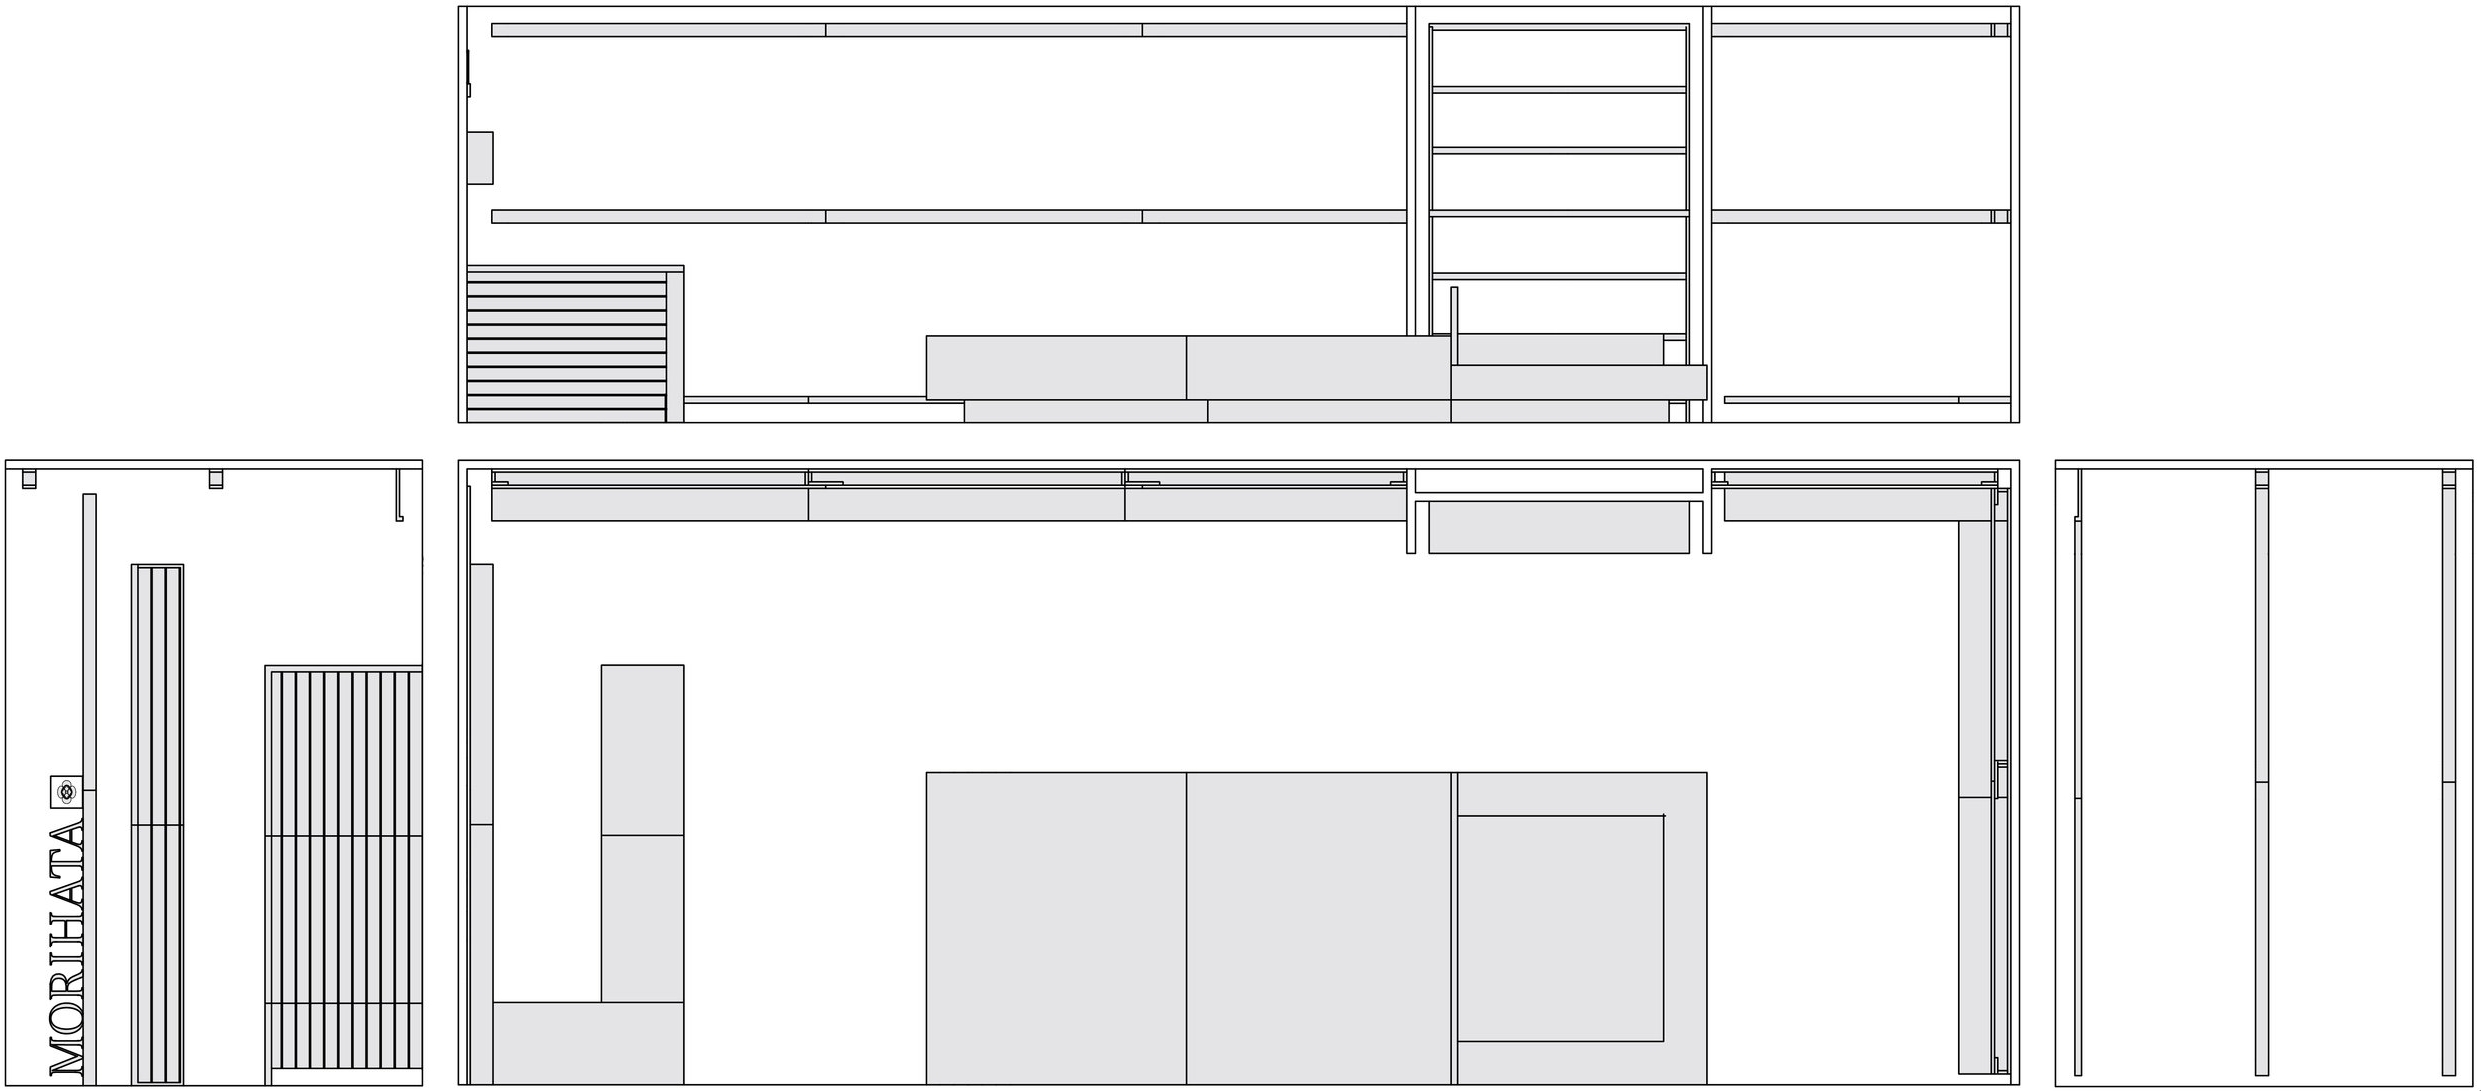 FINAL NYNOW BOOTH DESIGN all sides.jpg